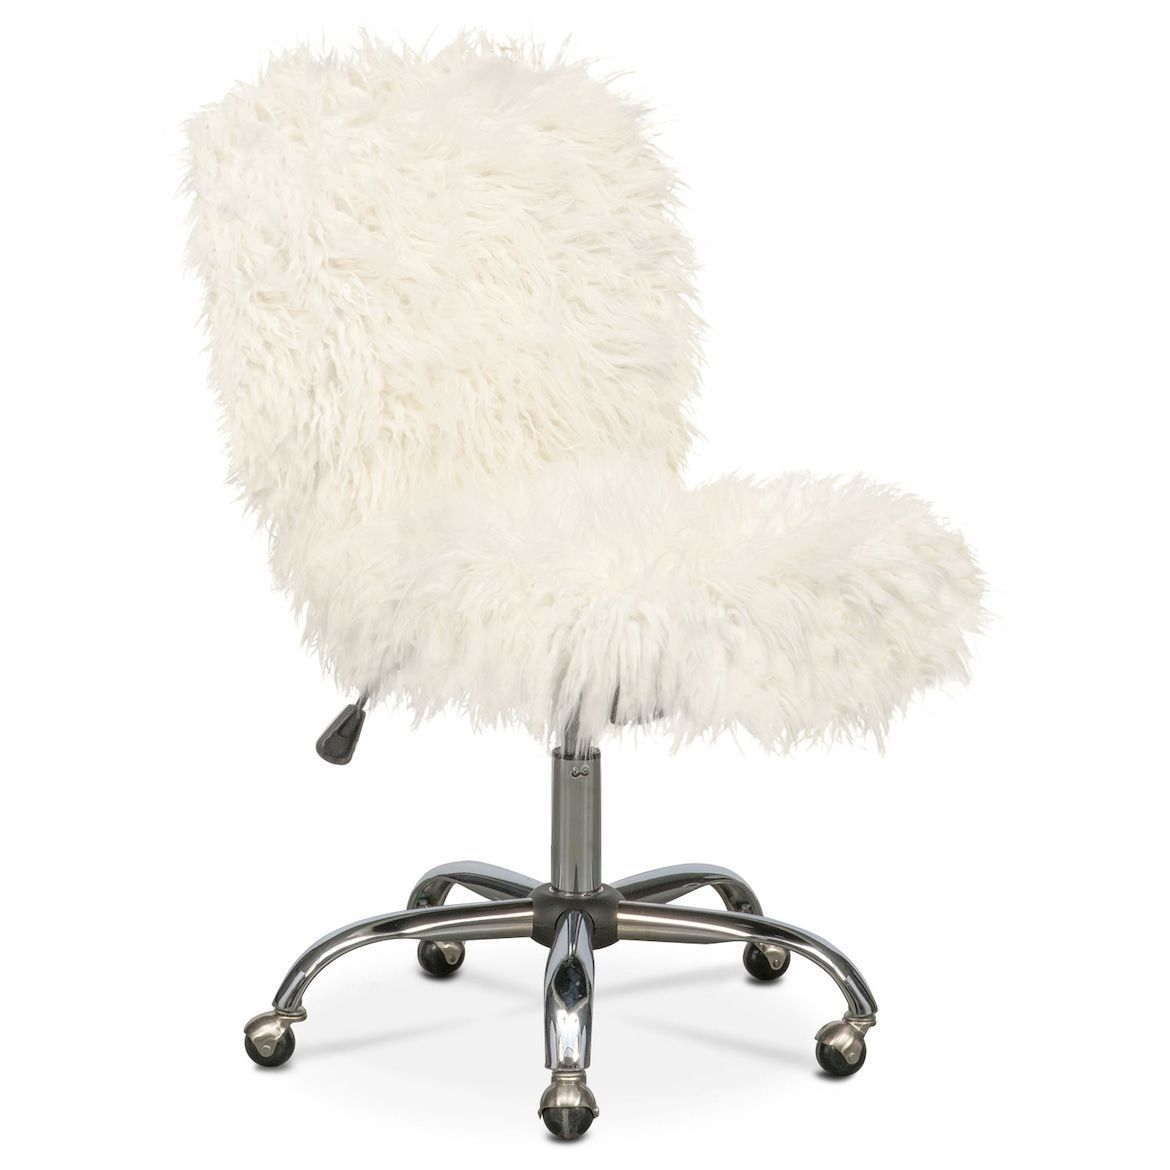 Frenzy Office Chair White Value City Furniture And Mattresses Cheap Office Furniture White Office Chair Office Furniture Layout